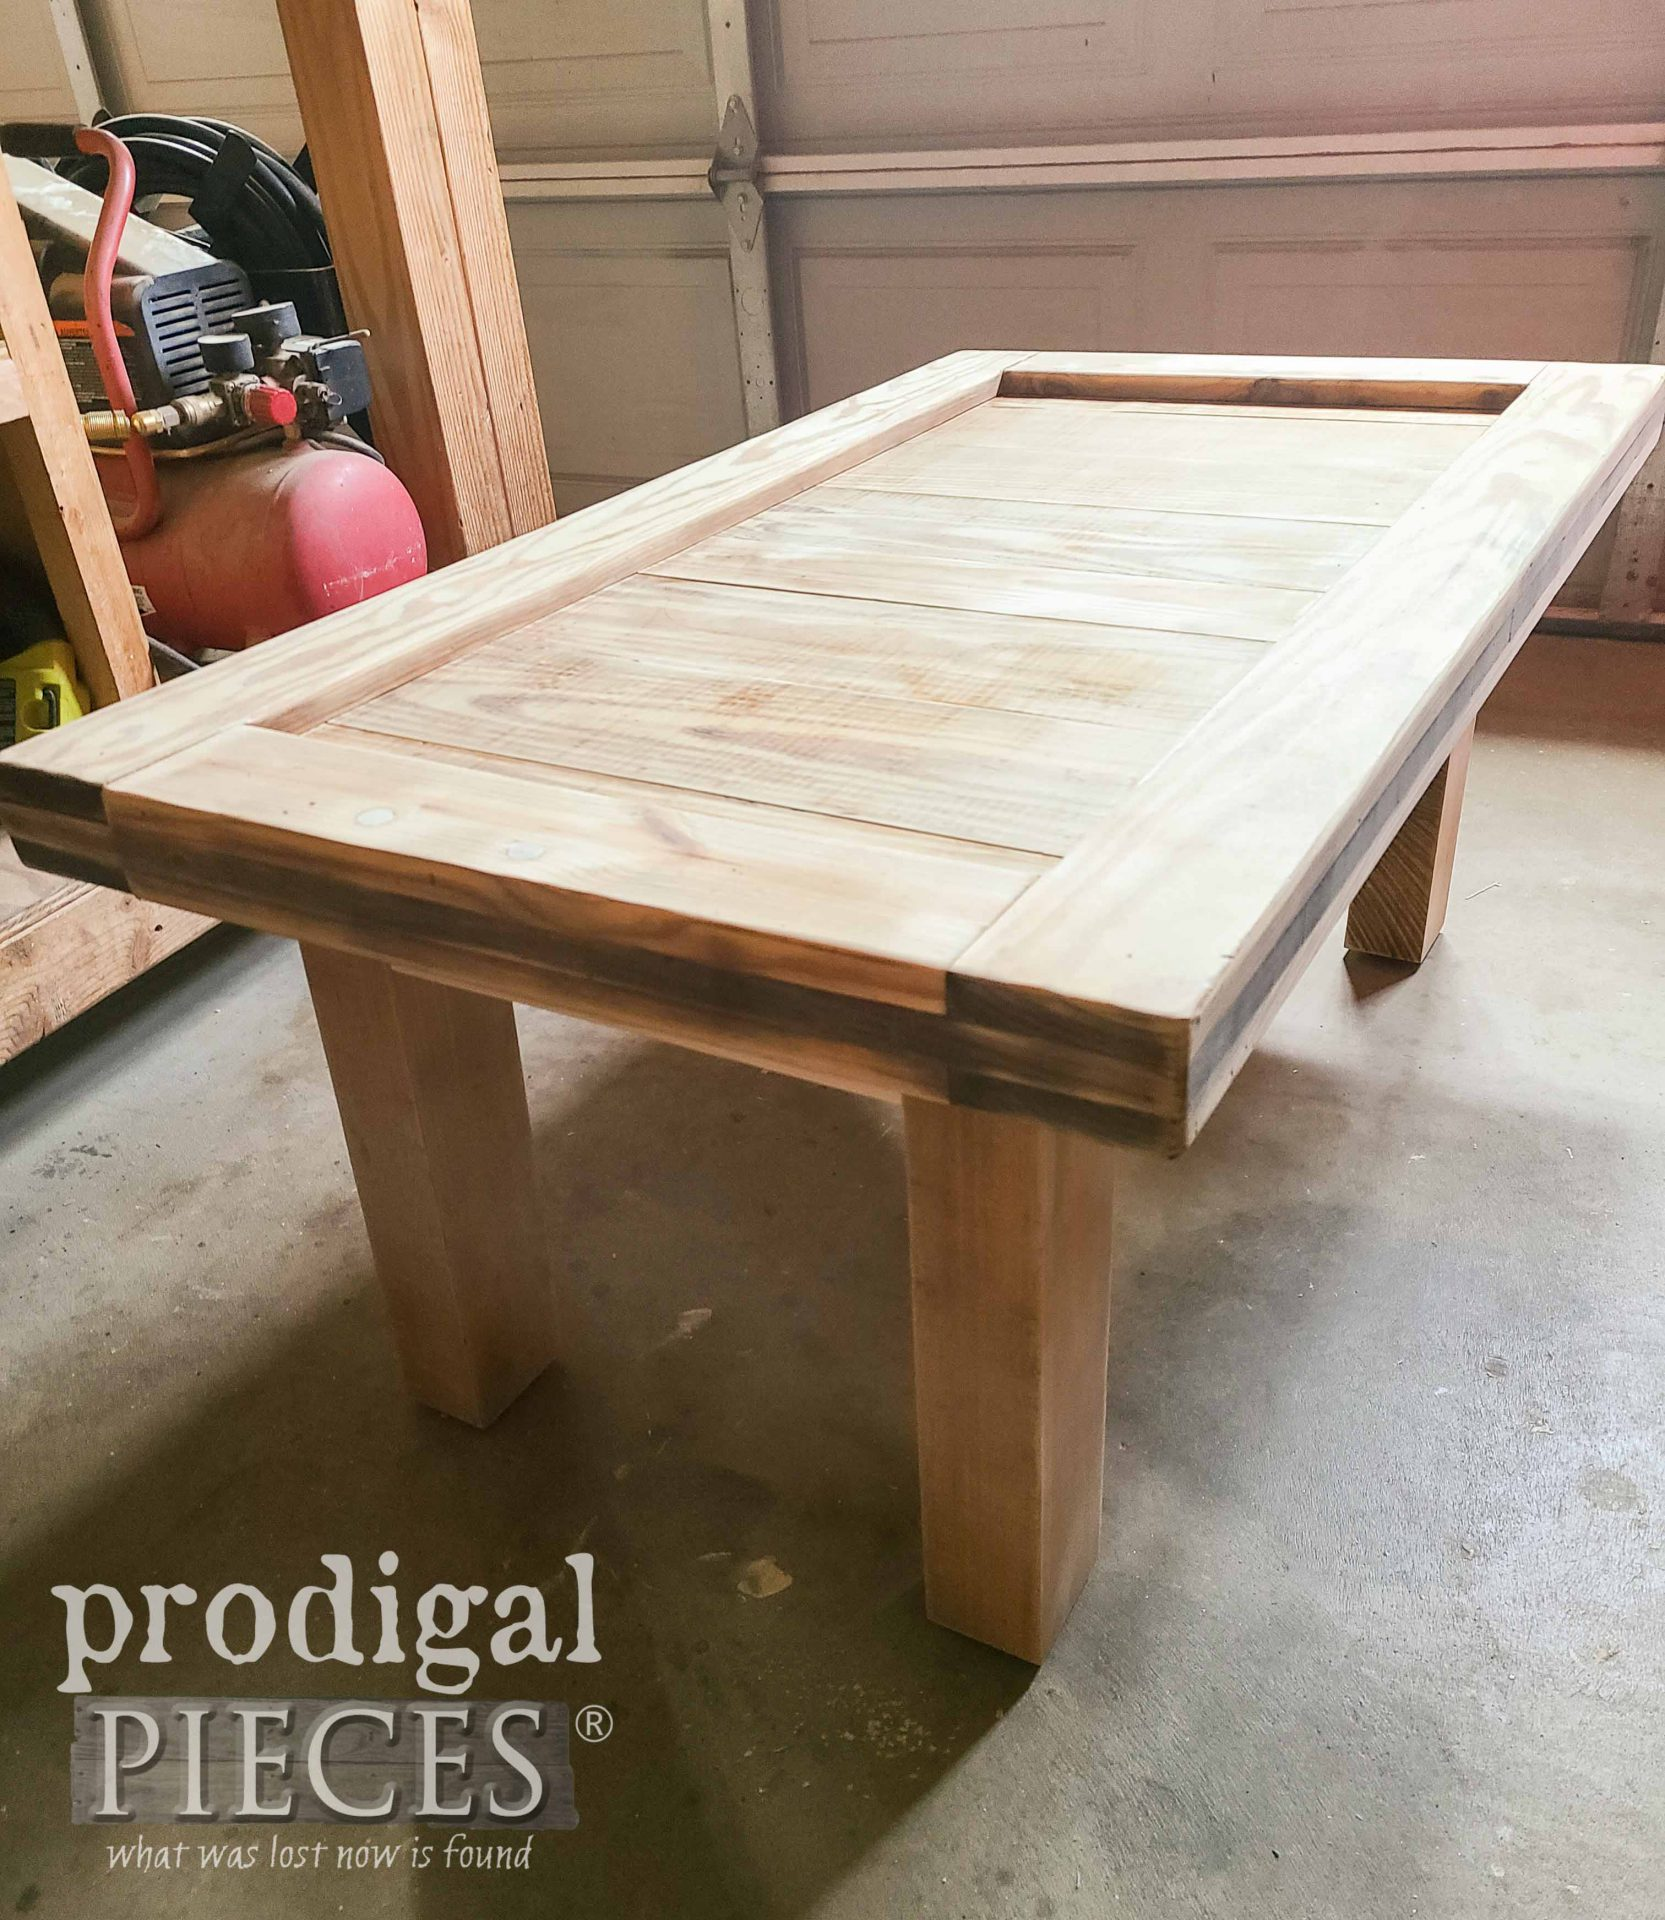 Sanded Table Before Finishing | prodigalpieces.com #prodigalpieces